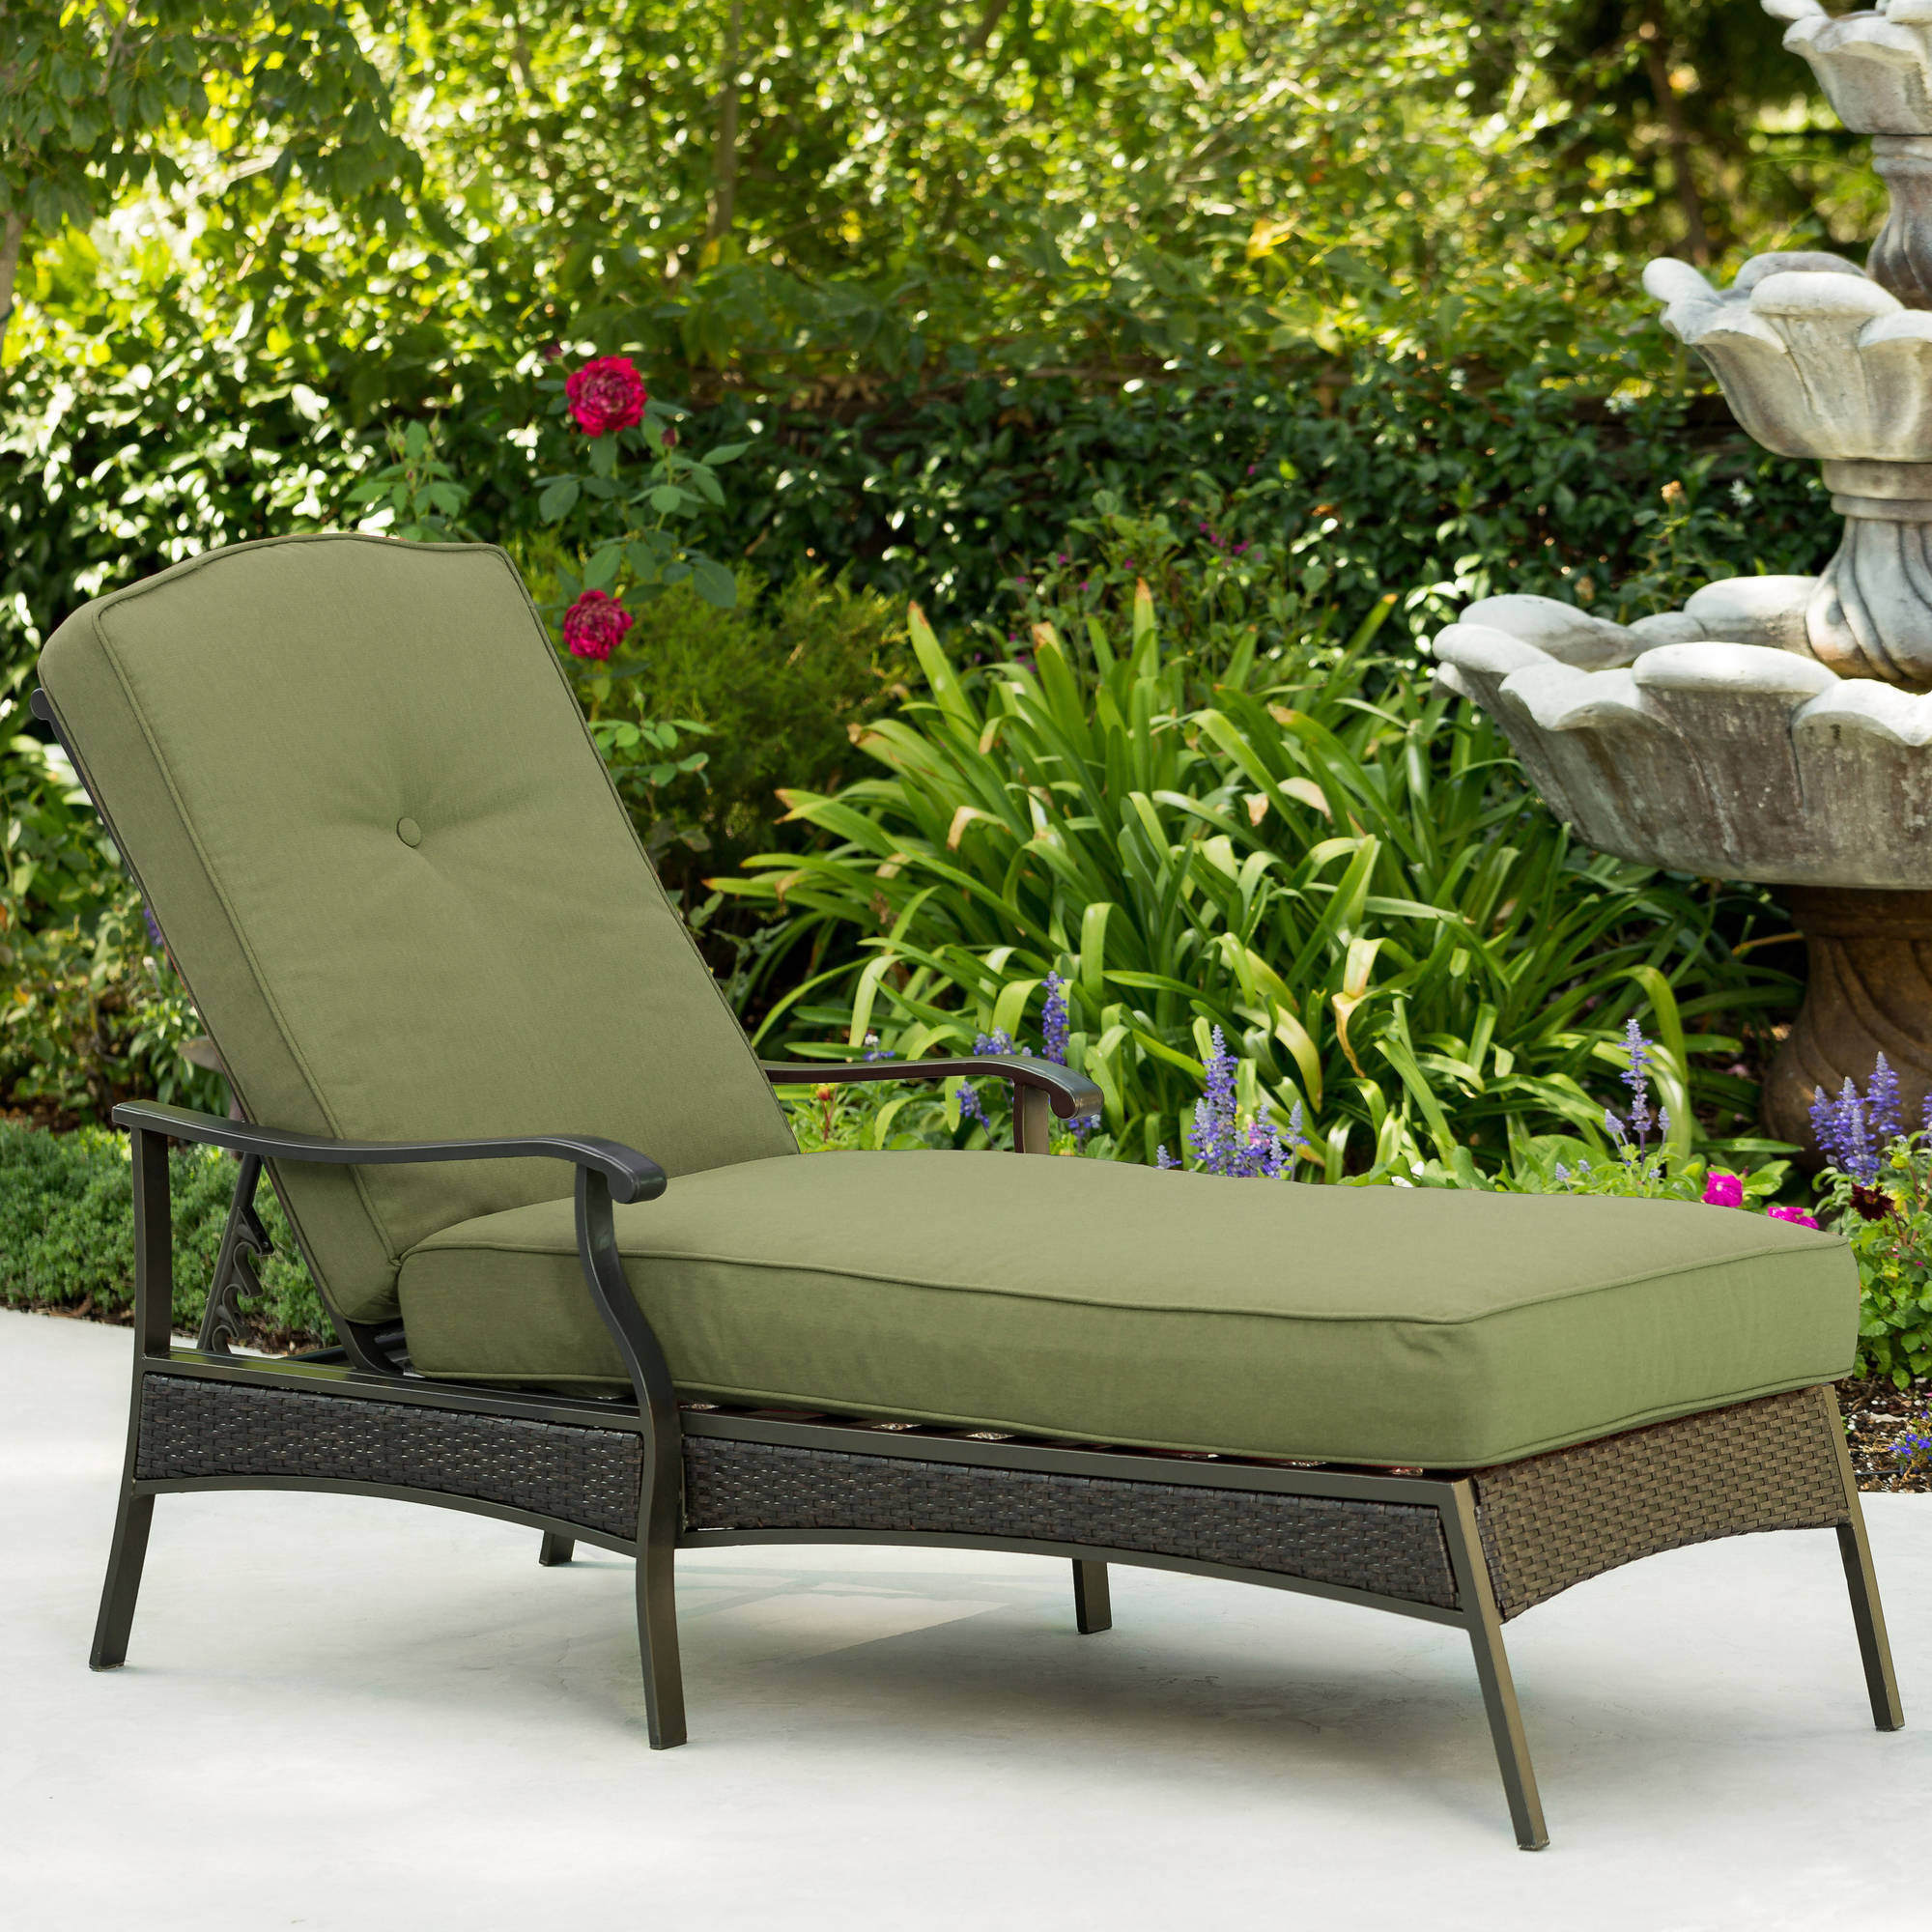 Outdoor Cart Wheel Adjustable Chaise Lounge Chairs Inside Well Liked Better Homes & Gardens Providence Outdoor Chaise Lounge, Green – Walmart (View 20 of 25)